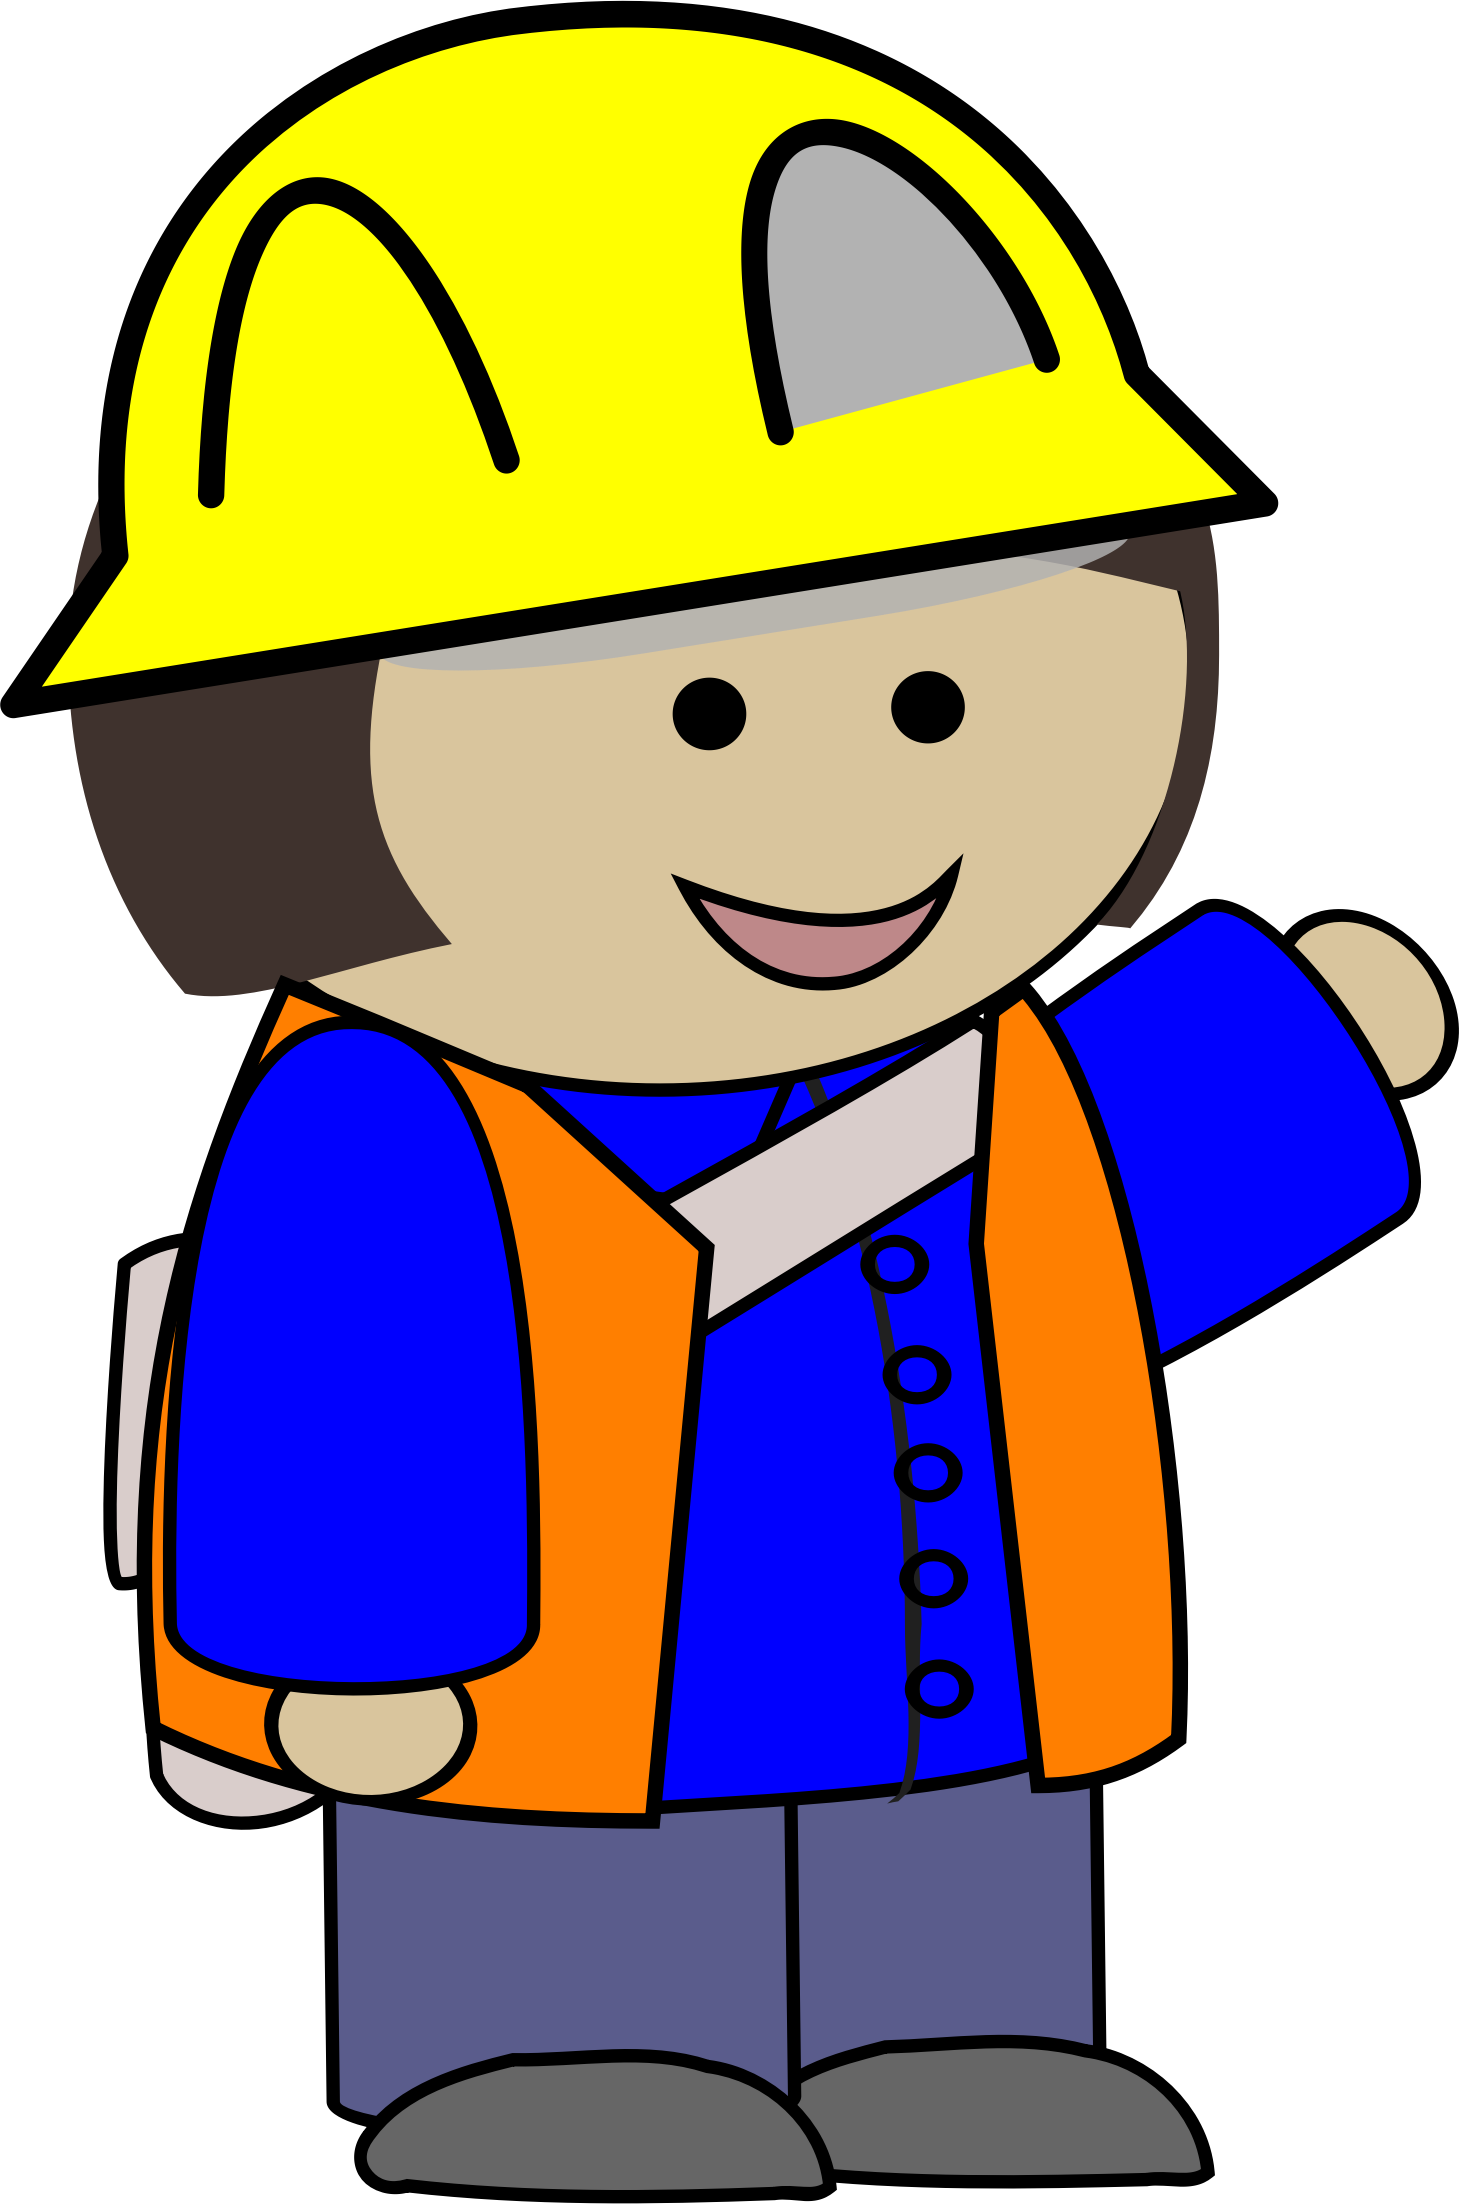 Working clipart construction. Kid big image png